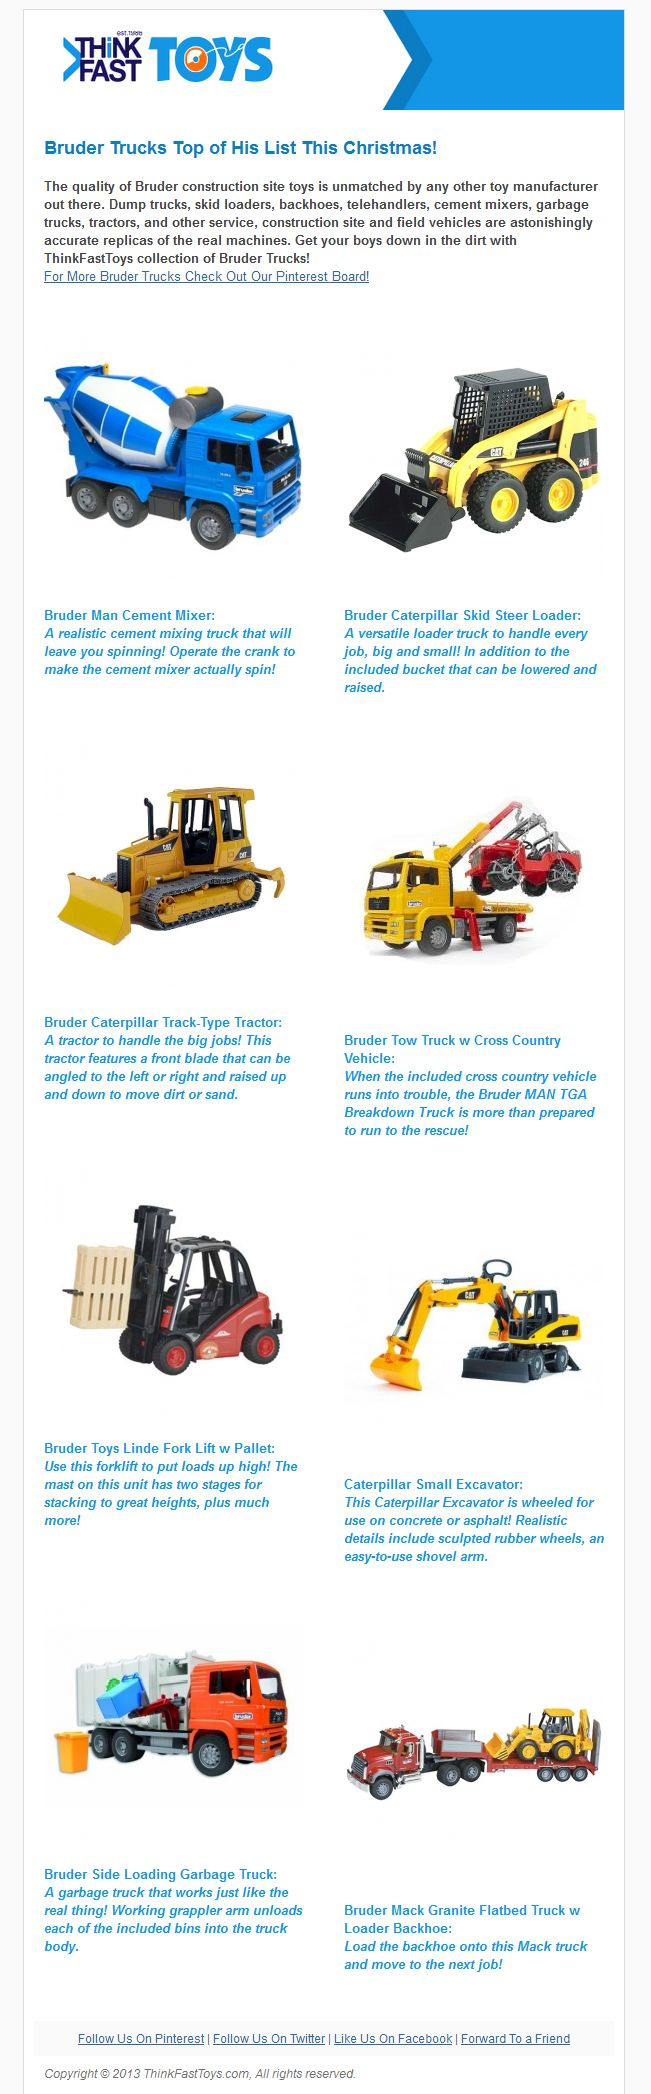 Bruder Construction Toys For Boys : Best images about bruder trucks on pinterest tow